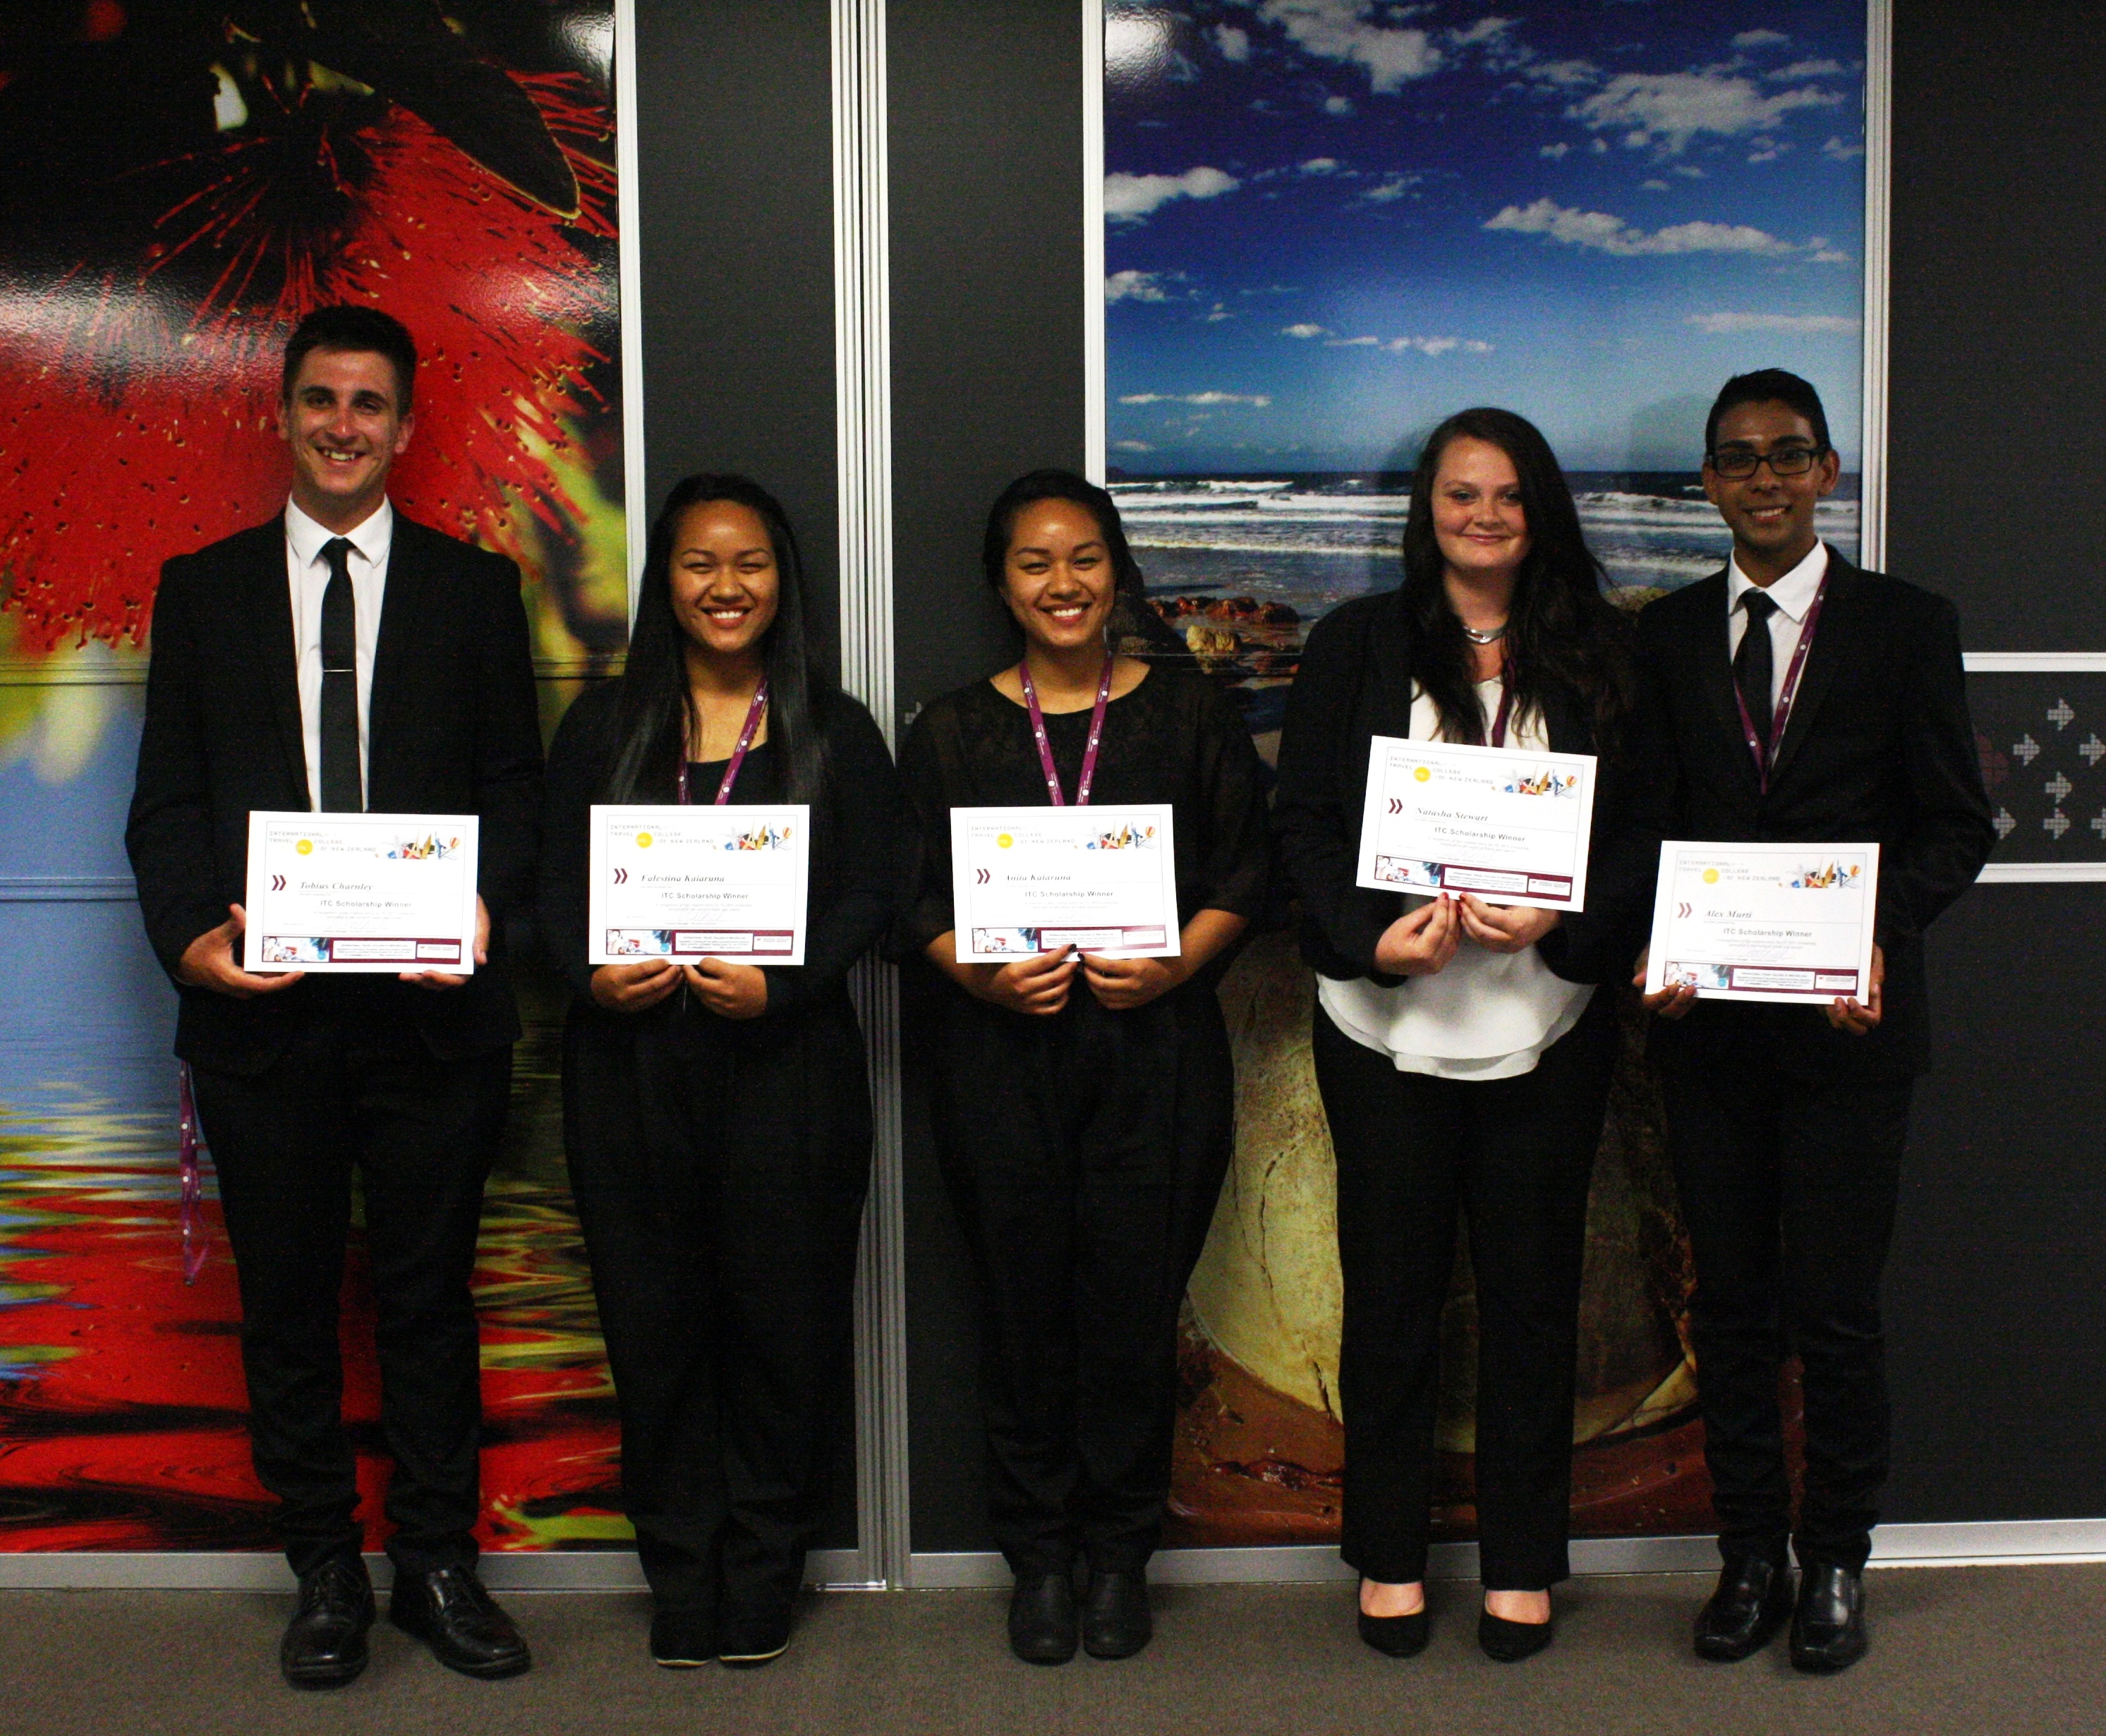 2015 Scholarship Winners from left to right: Tobius, Anita, Falestina, Natasha and Alex